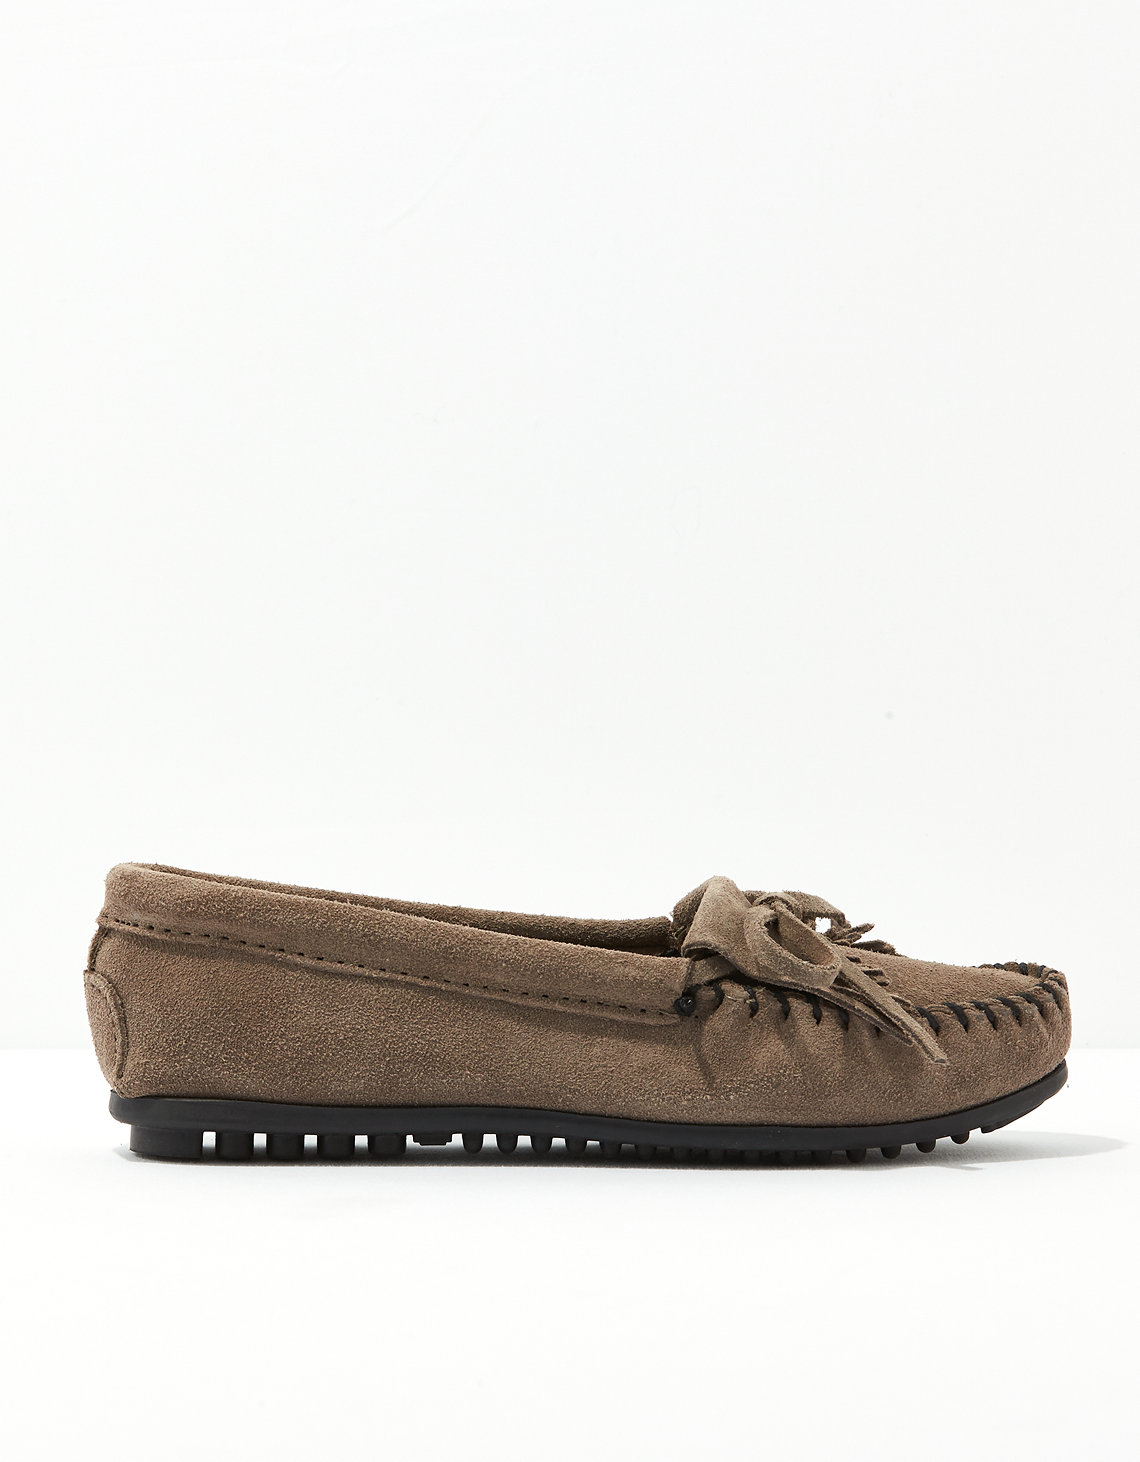 d039b856e2a Minnetonka Kilty Suede Moccasin. Placeholder image. Product Image